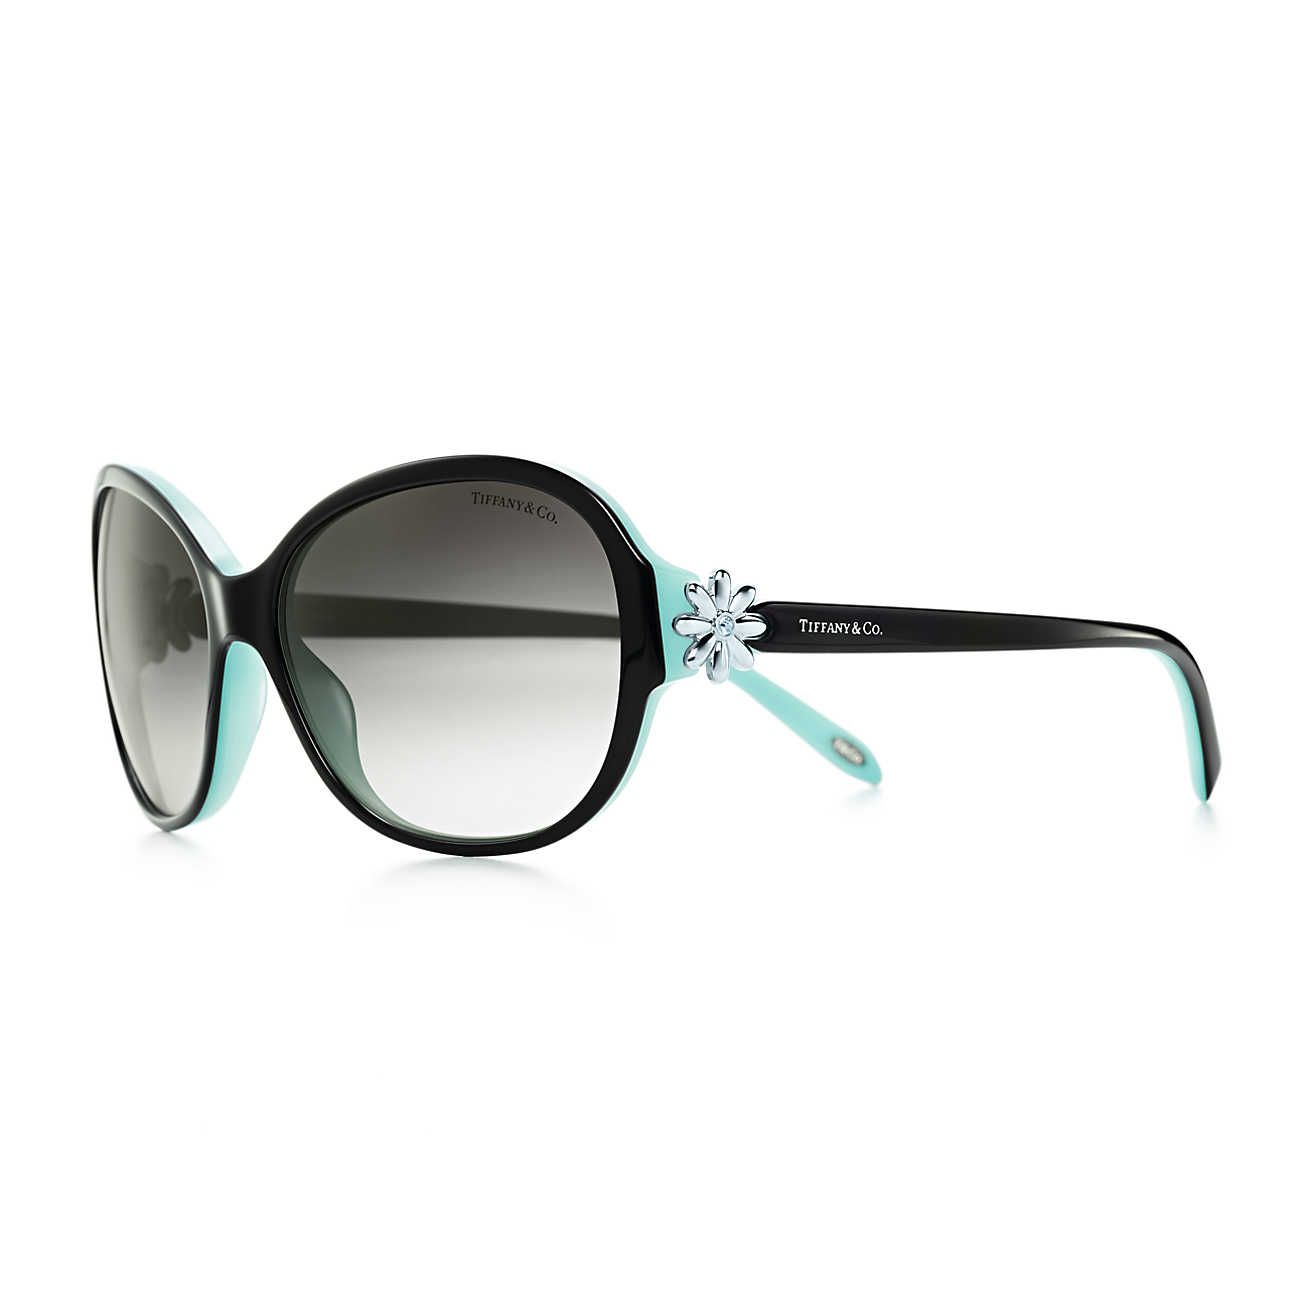 Tiffany Garden Round Sunglasses   Crowns and Jewels   Pinterest ... 02dd40c9b4